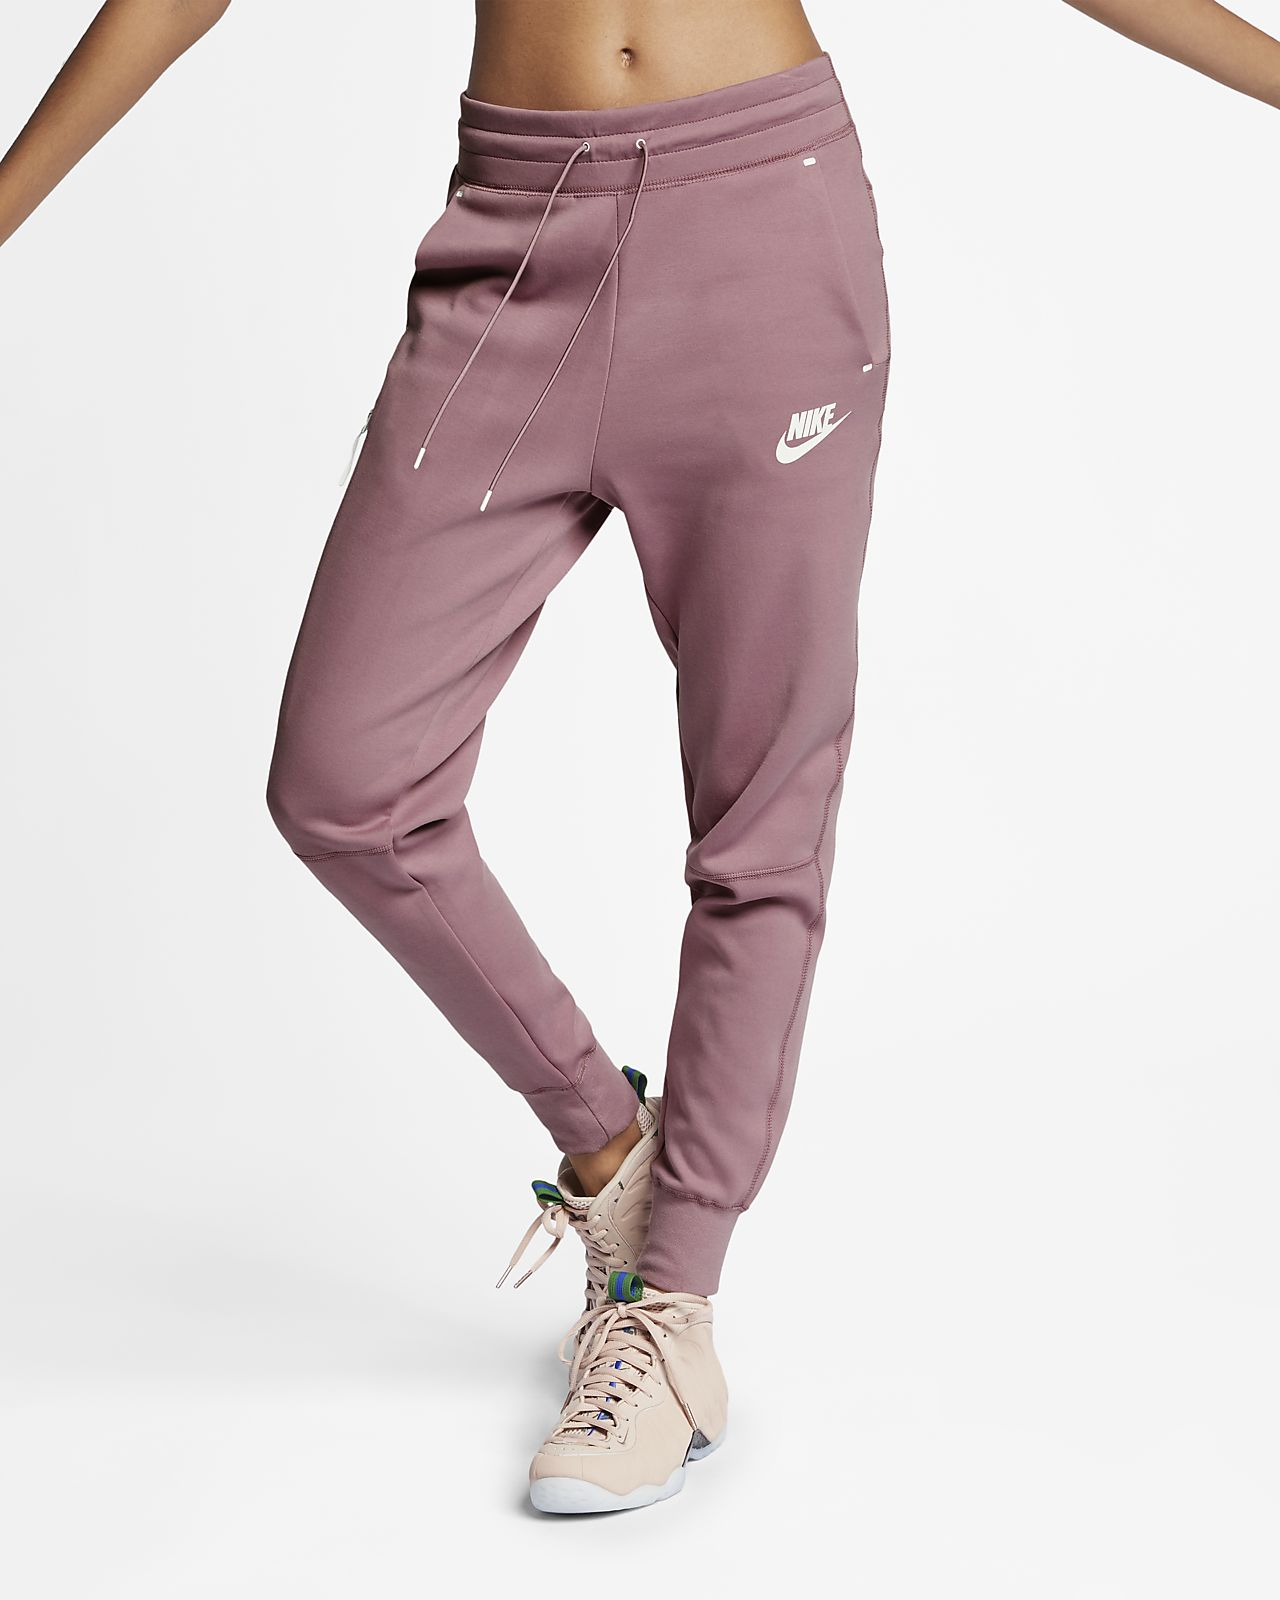 5c4786879c7ba2 Nike Sportswear Tech Fleece Women s Pants. Nike.com